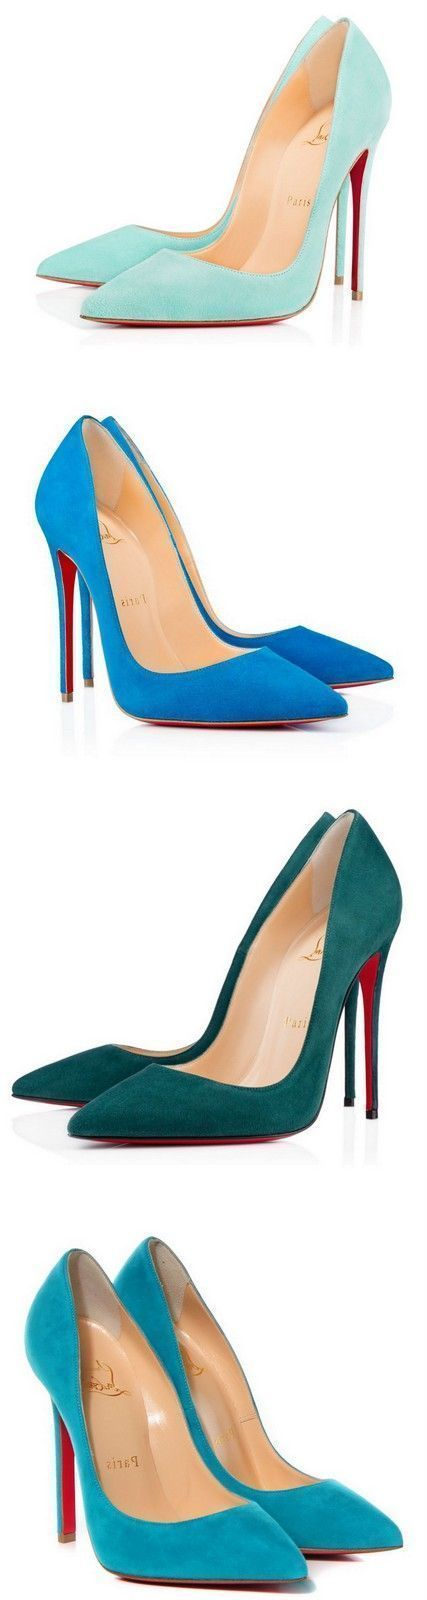 Christian Louboutin High Heels Collection More Luxury Details #manoloblahnikheelschristianlouboutin #charlotteolympiaheelsoutfit